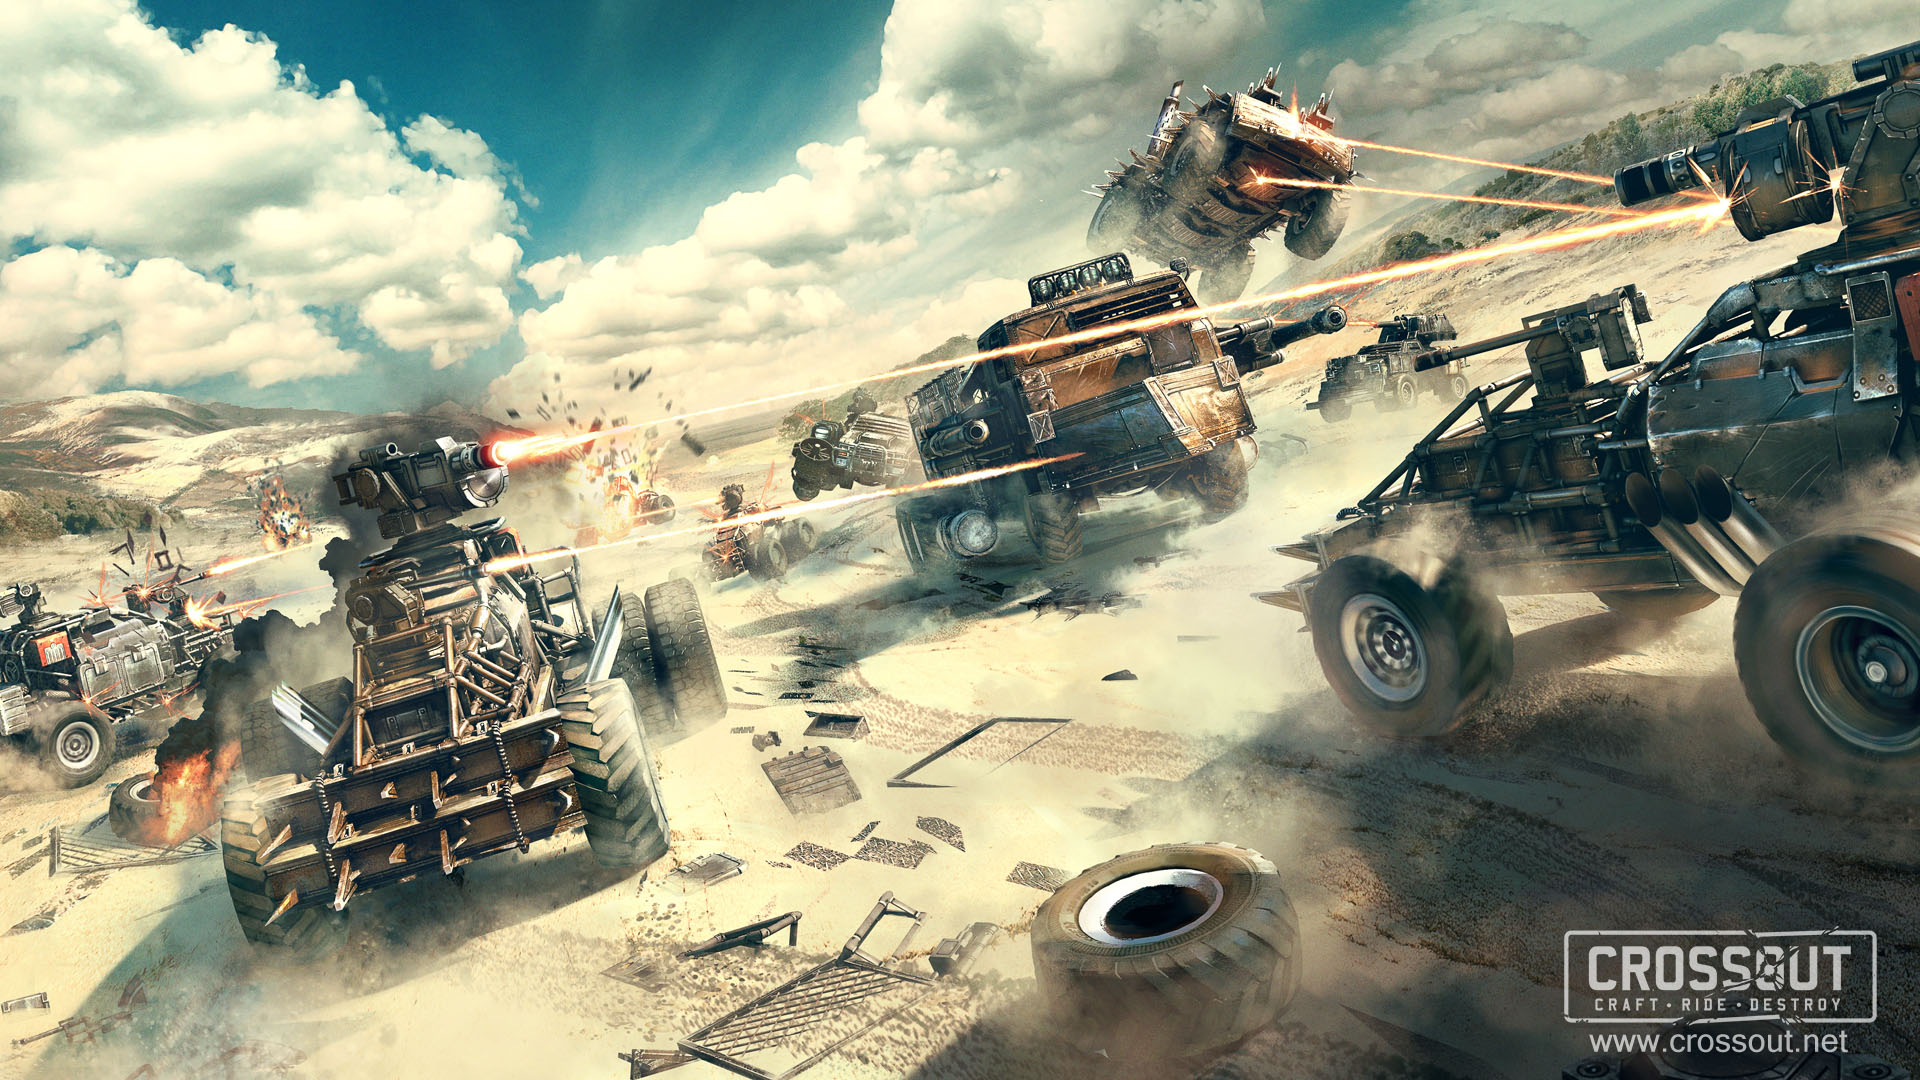 Crossout Hd Wallpaper Background Image 1920x1080 Id854263